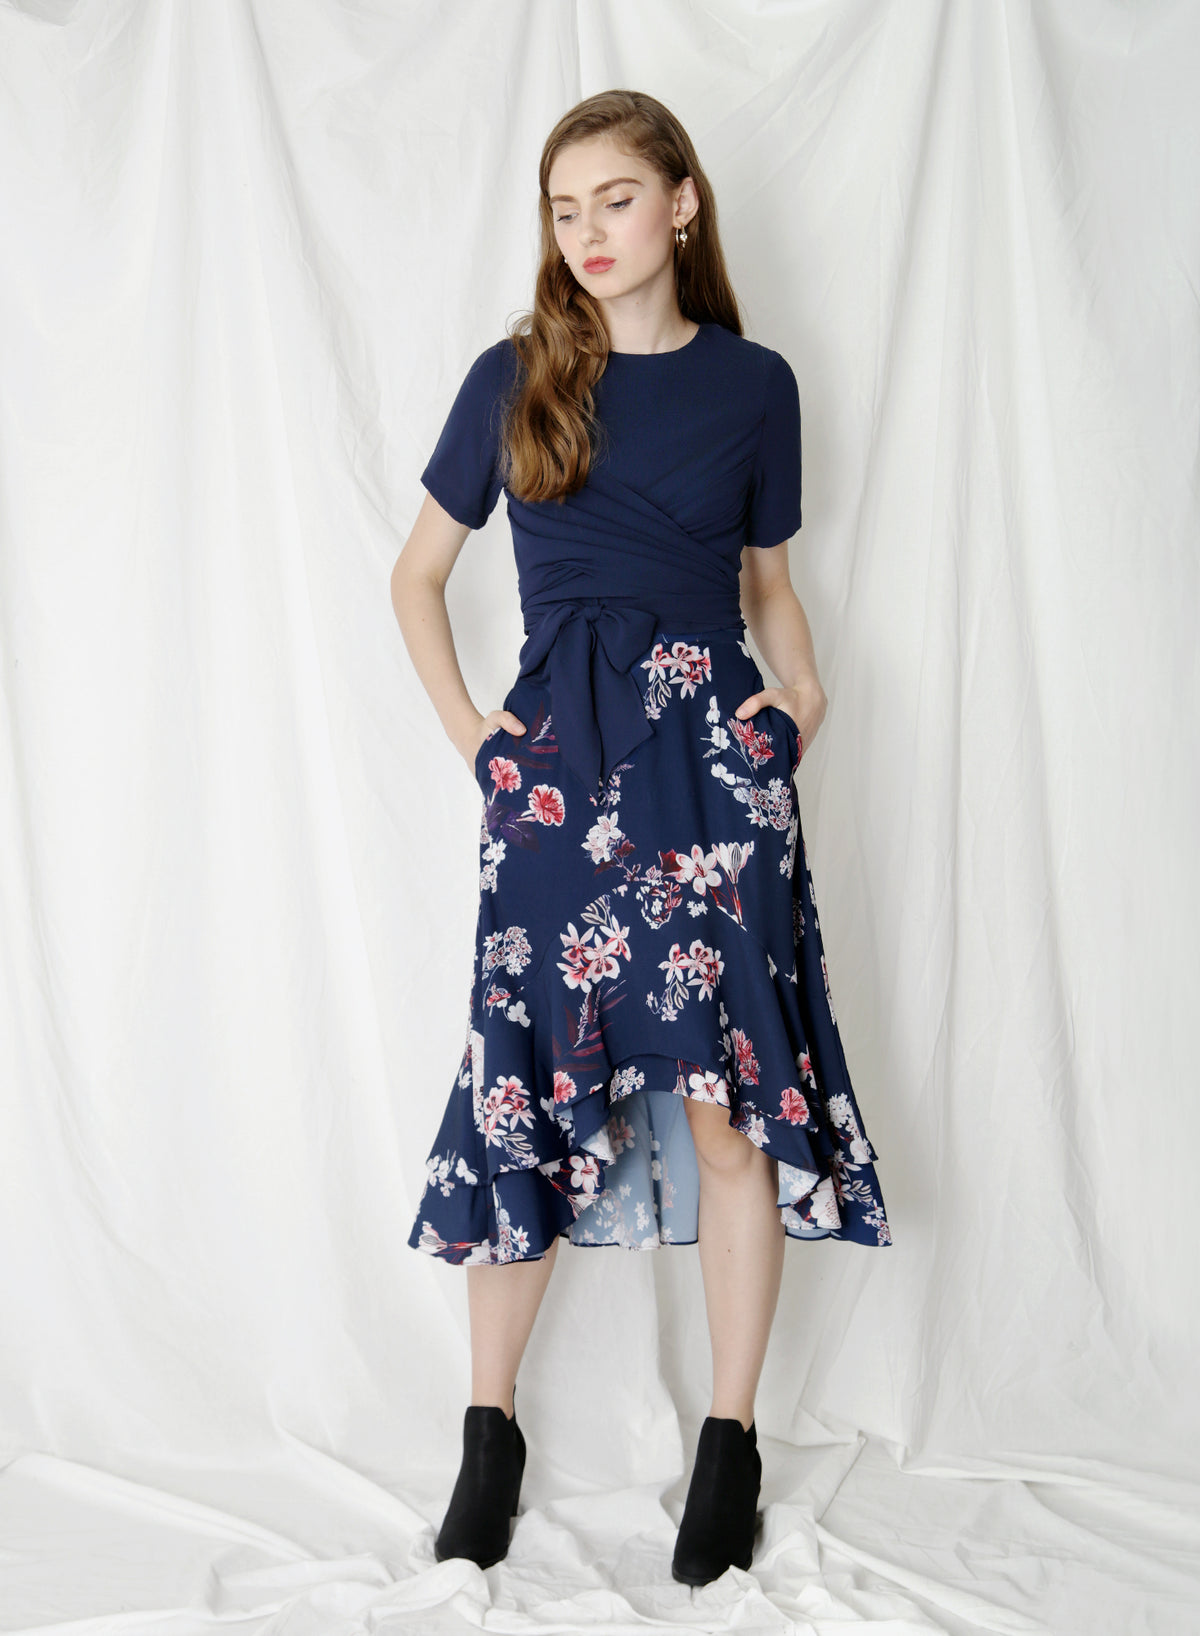 Eden Double Tier Floral Skirt (Navy) at $ 38.00 only sold at And Well Dressed Online Fashion Store Singapore